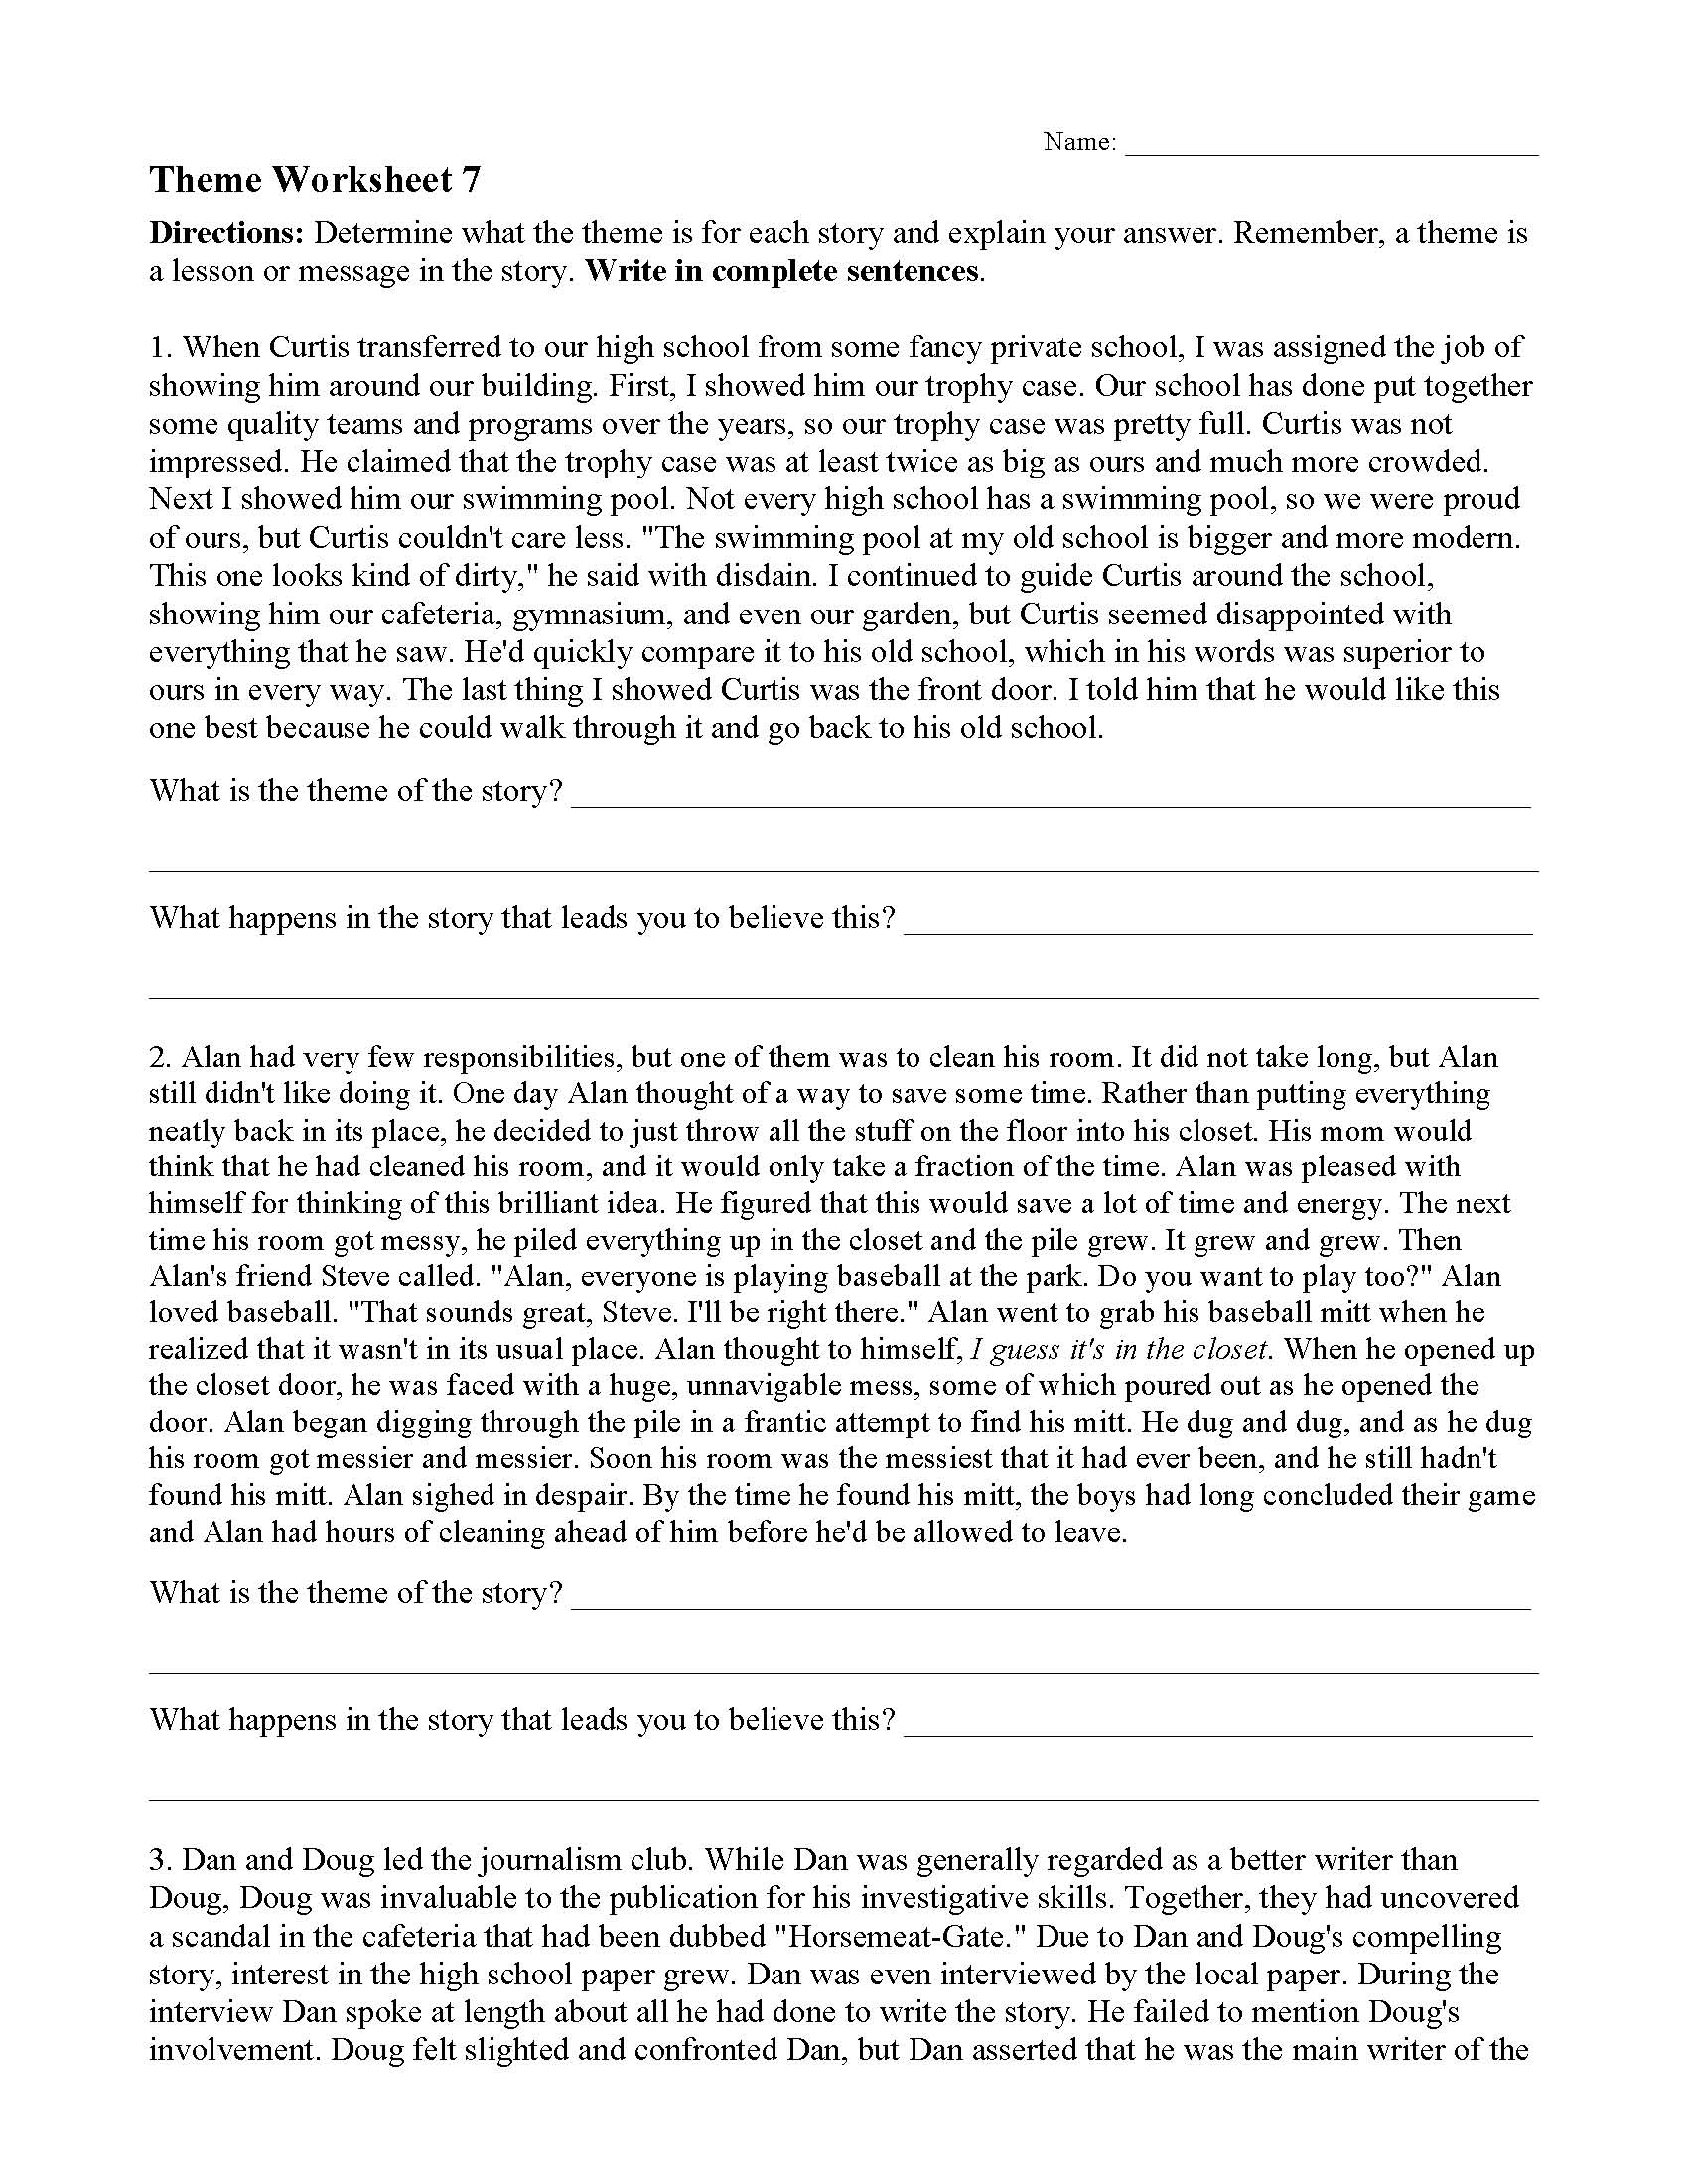 Theme Worksheet 7